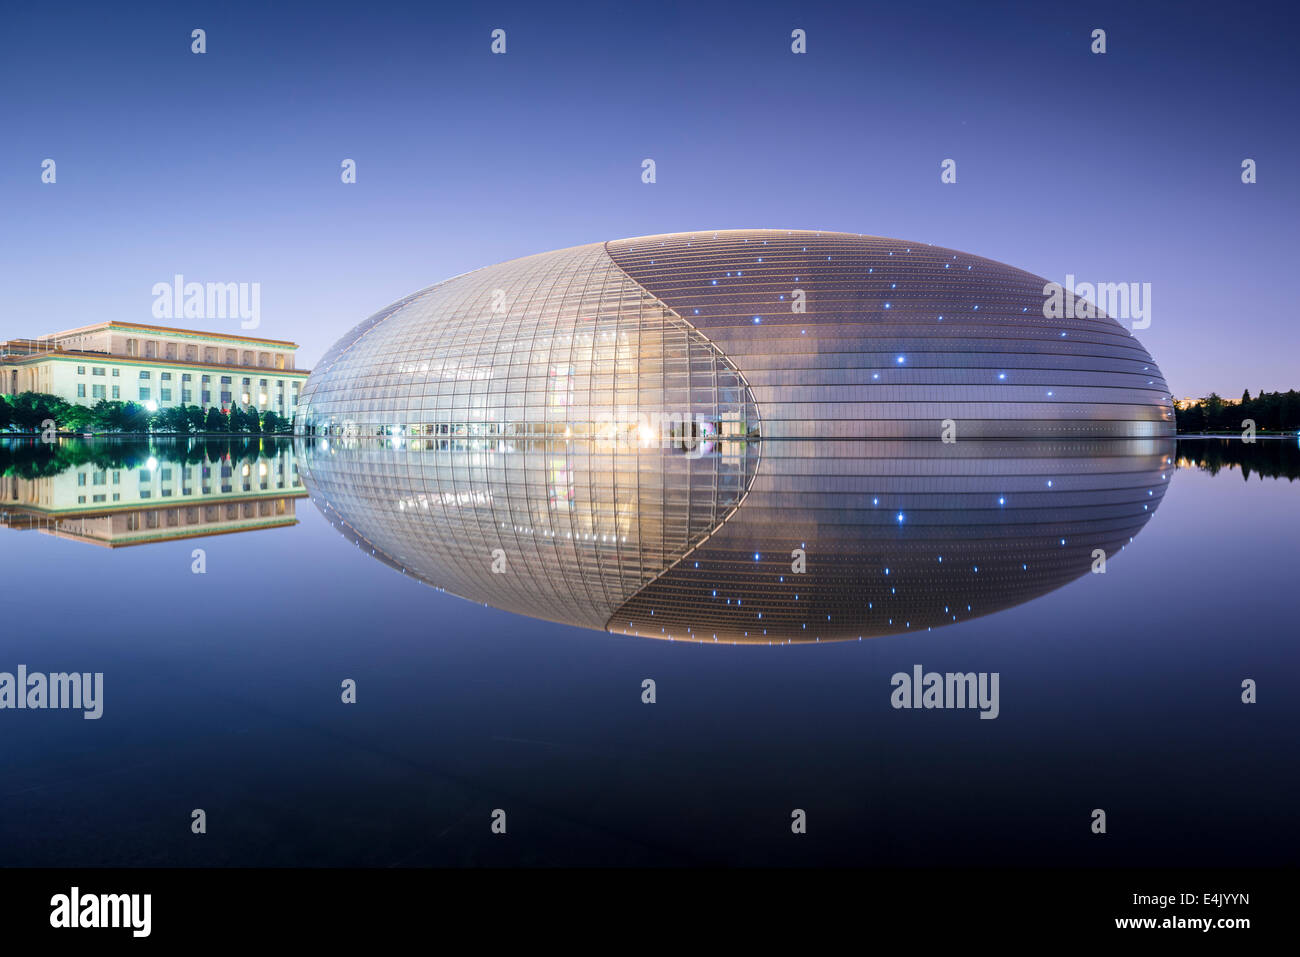 National Centre for the Performing Arts in Bejing, China. - Stock Image